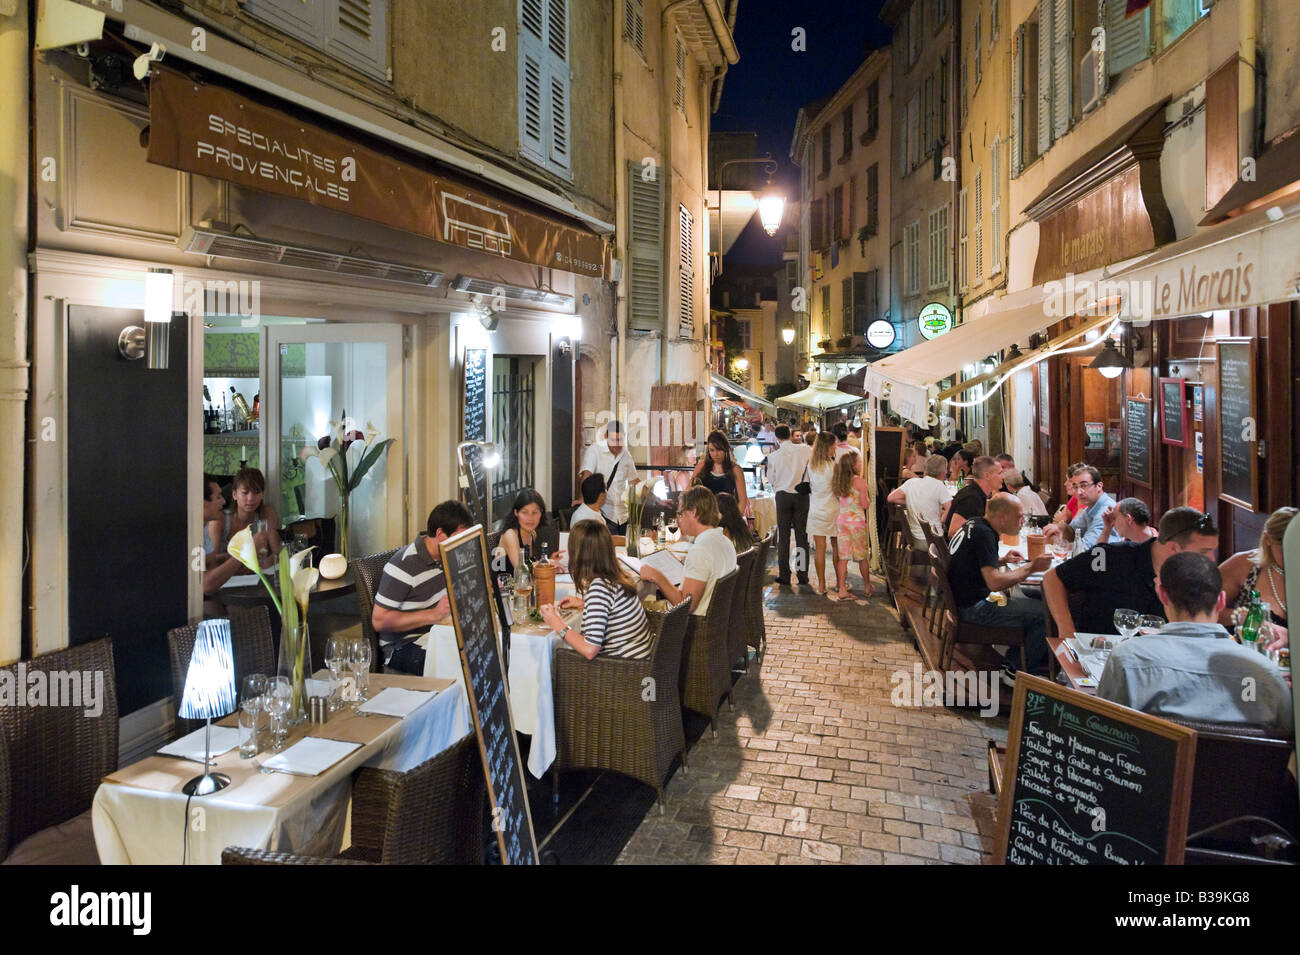 Resaurant on the Rue du Suquet in the old town (Le Suquet) at night, Cannes, Cote d'Azur, Provence, France - Stock Image